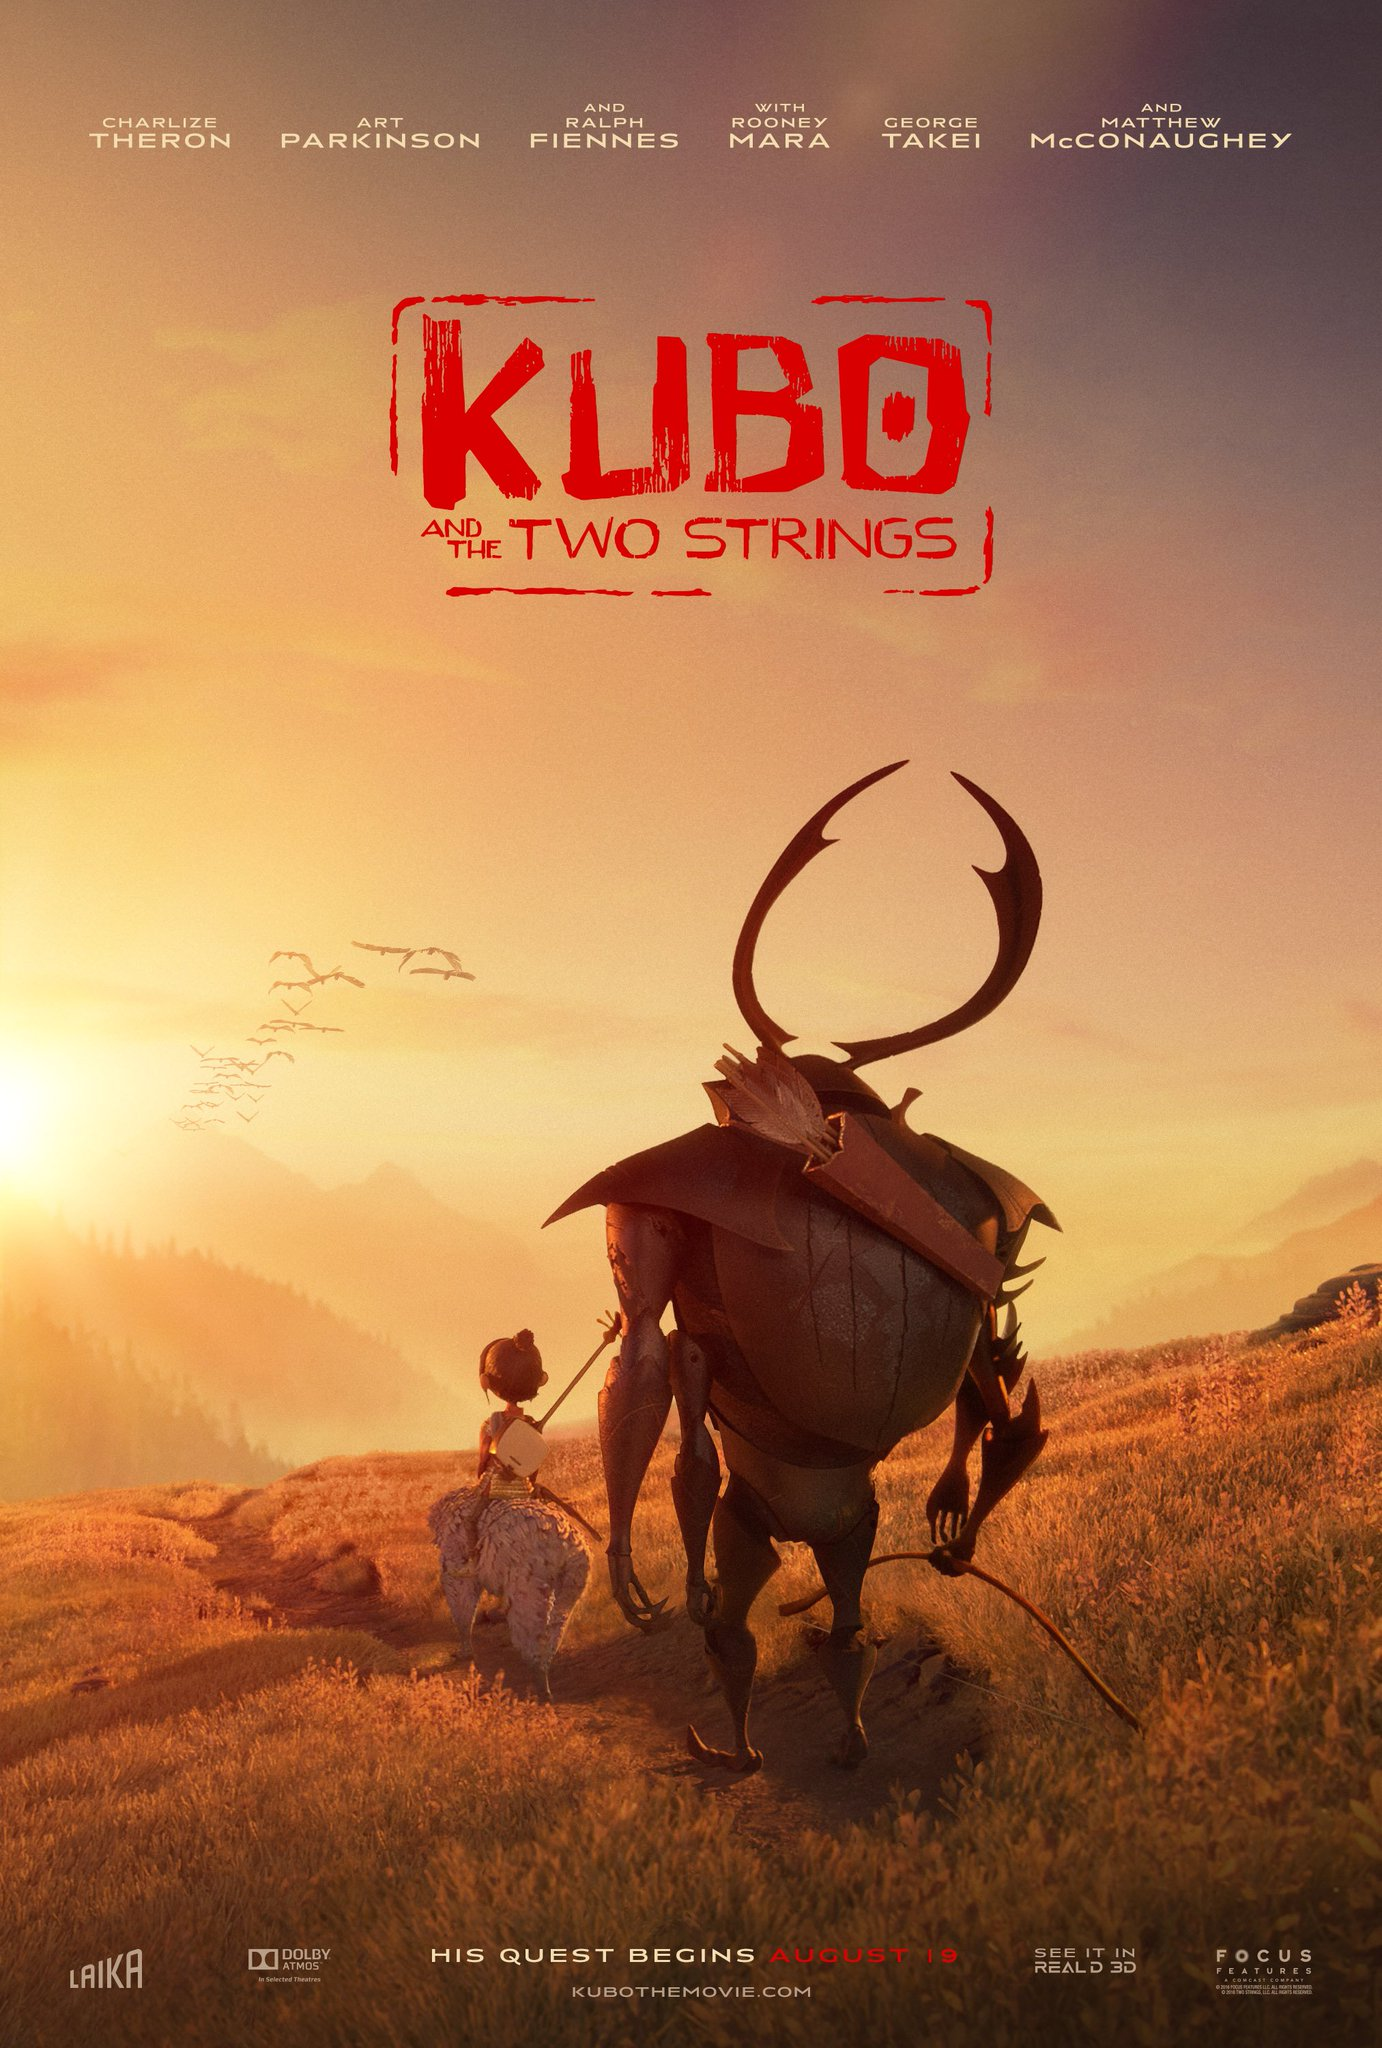 New Kubo and the Two Strings Trailer & Posters Revealed 1